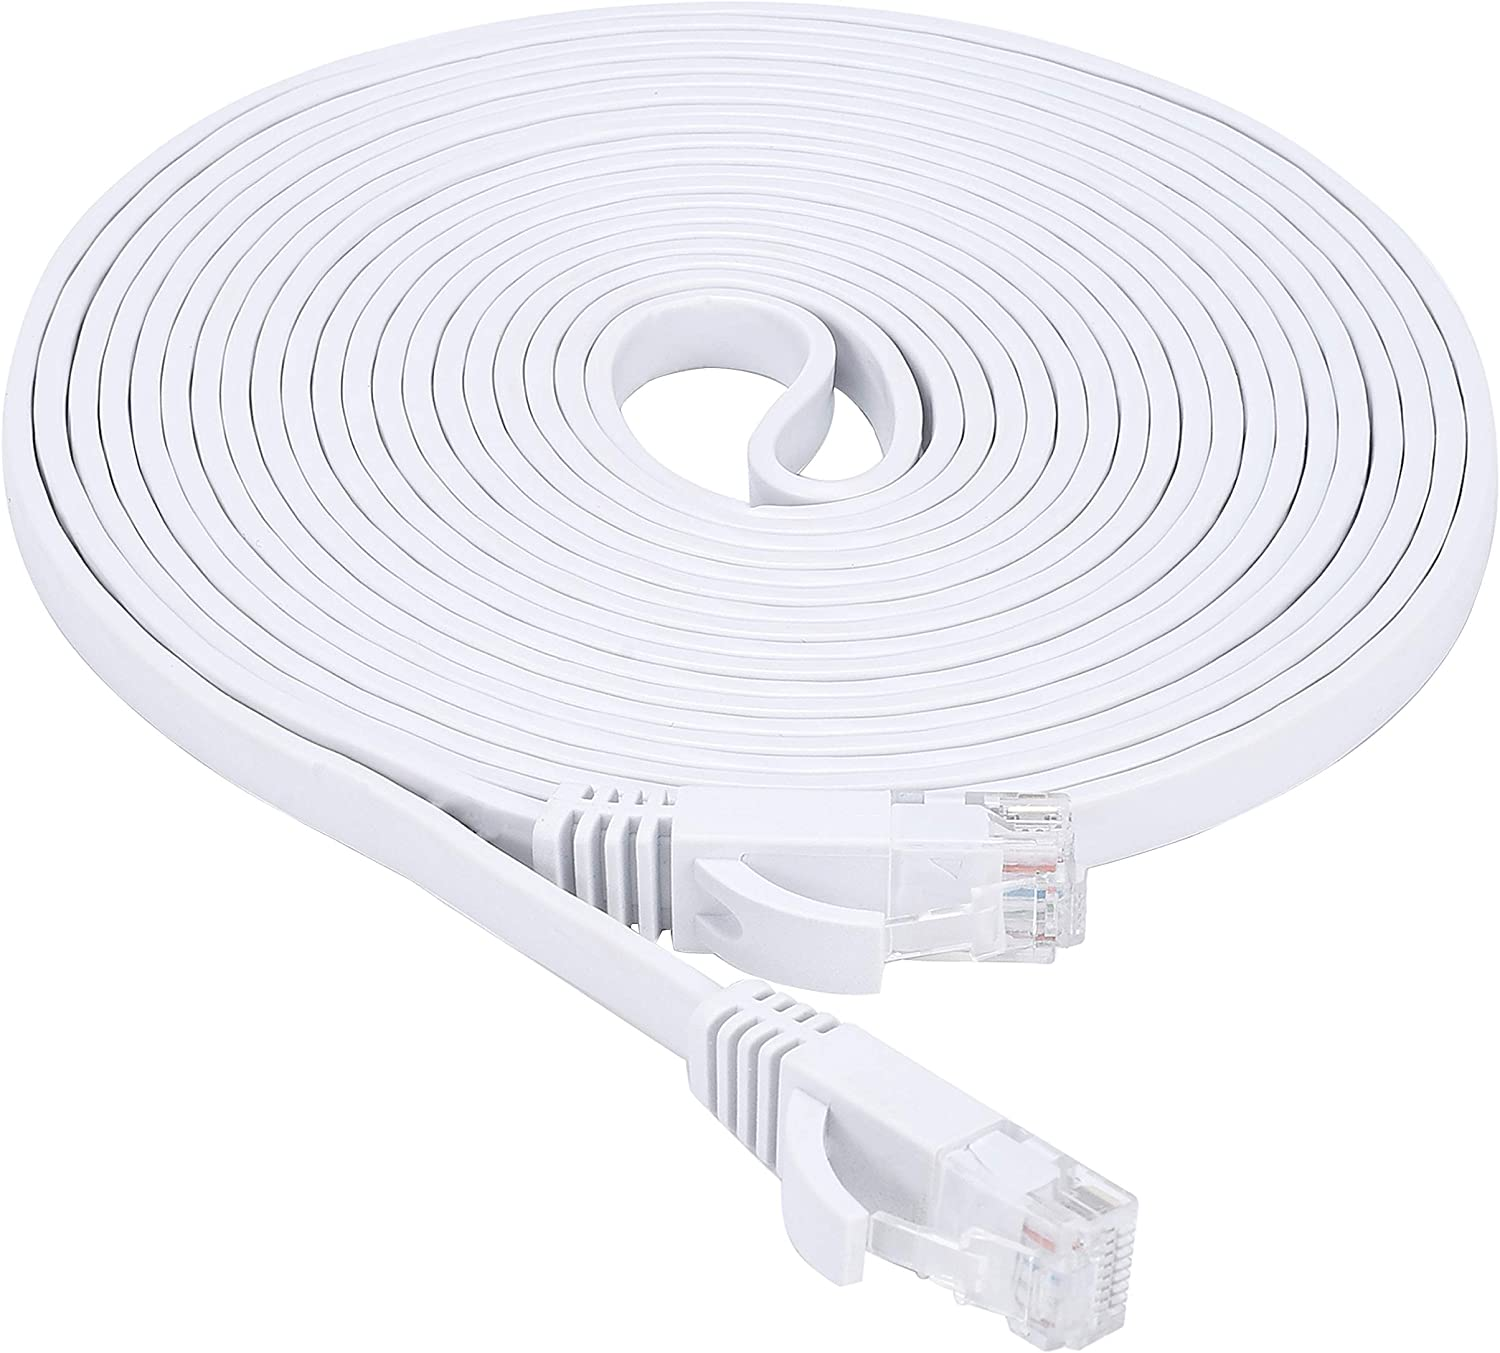 Cat6 Ethernet Cable 50 Ft, White Flat Network LAN Patch Cord with Clips & Snagless Rj45 Connectors for Router, High Speed Computer Wire Faster Than Cat5e Cat5 (50Ft, 1 Pack, White)